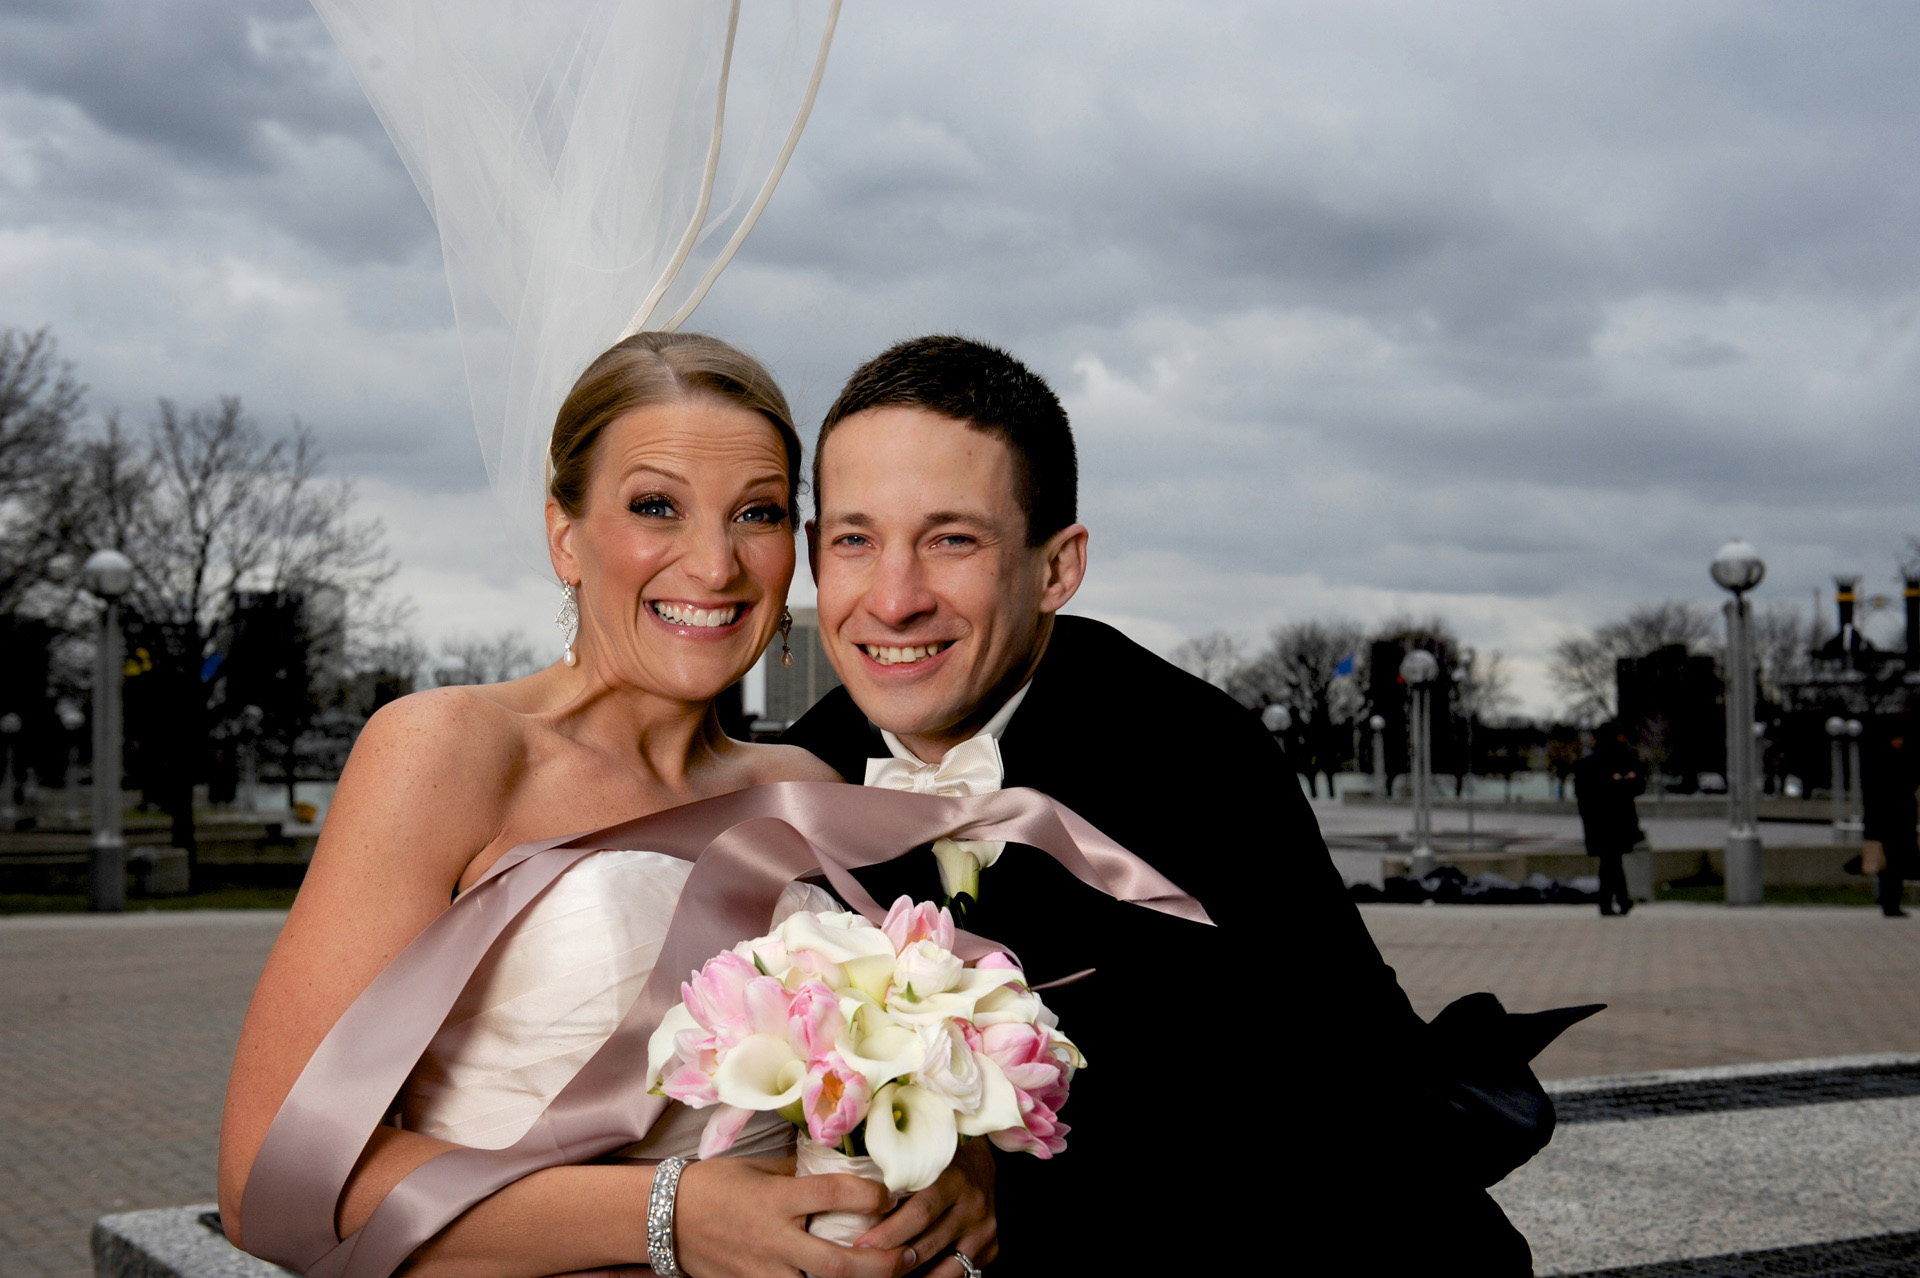 A windy winter wedding in Michigan photographer's photo of bride and groom freezing in the wind after their Michigan wedding in Detroit, Michigan's wedding venue St. Aloysius Detroit, Michigan and the Detroit Athletic Club.